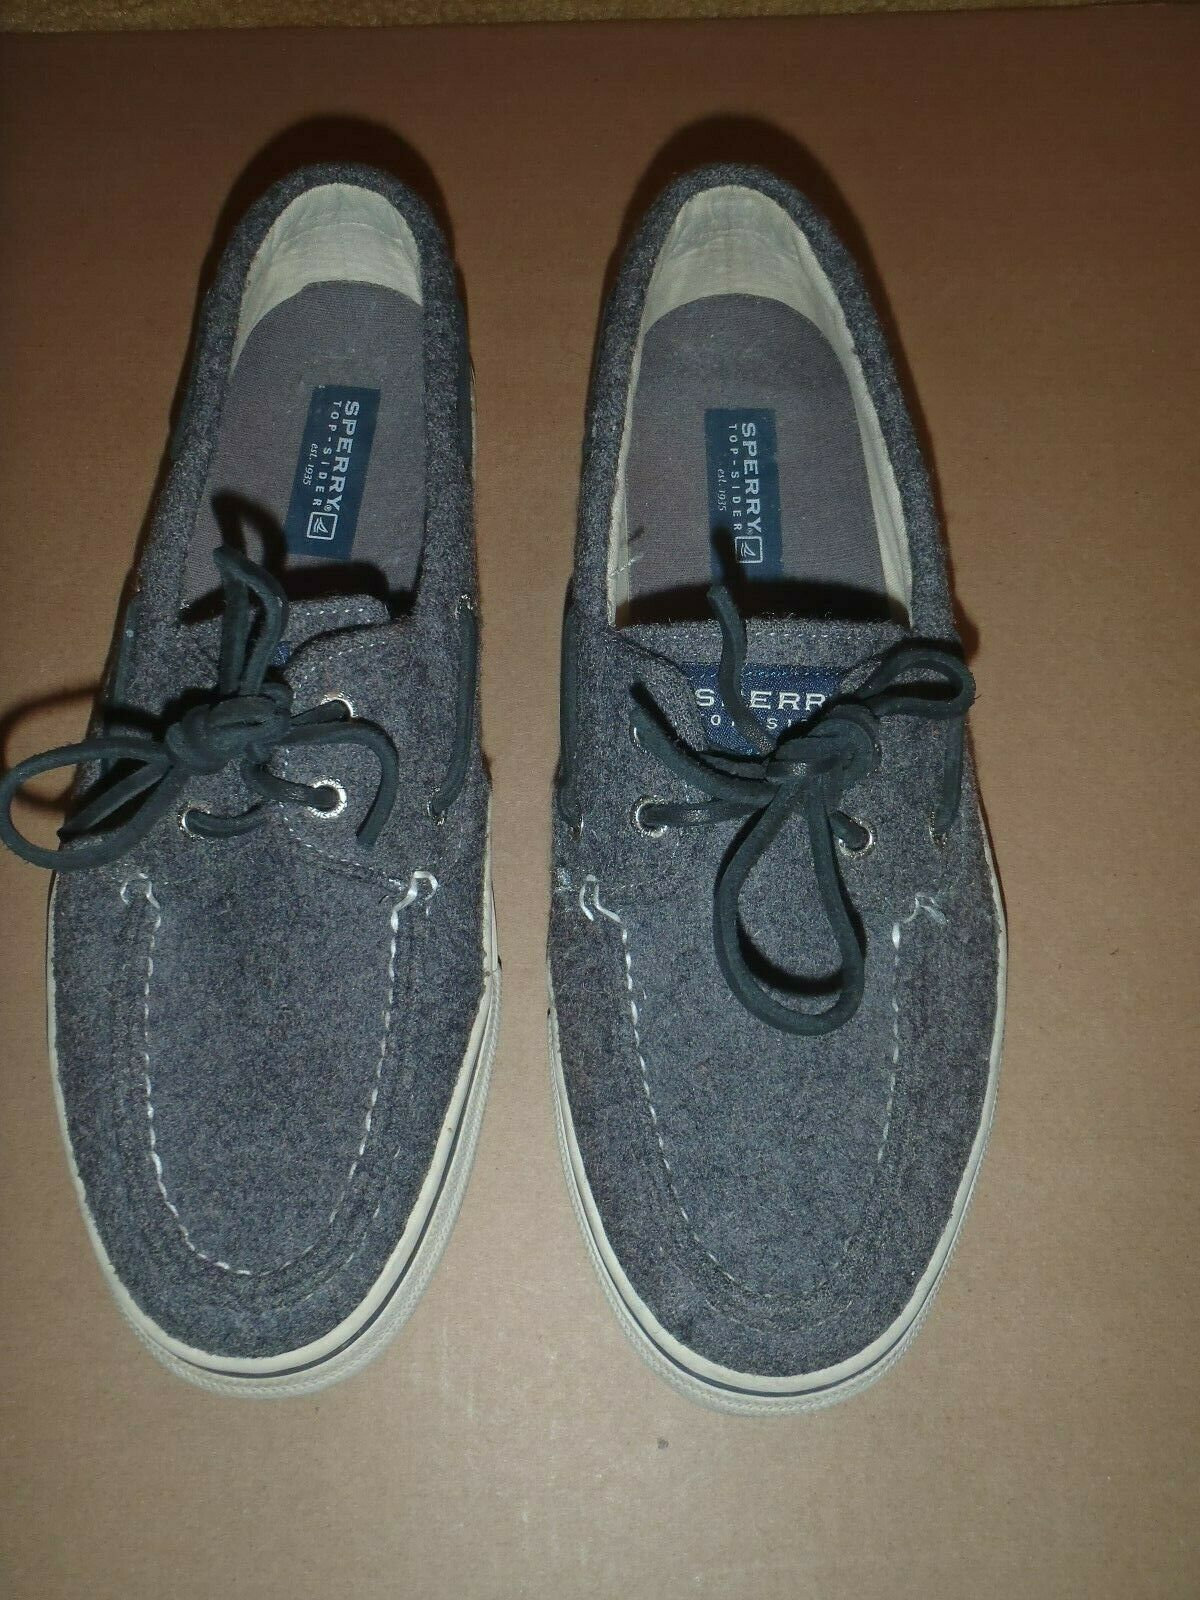 Primary image for Sperry Top-Sider Bahama Gray Wool 2 Eyelet Boat Shoe Mens 11M